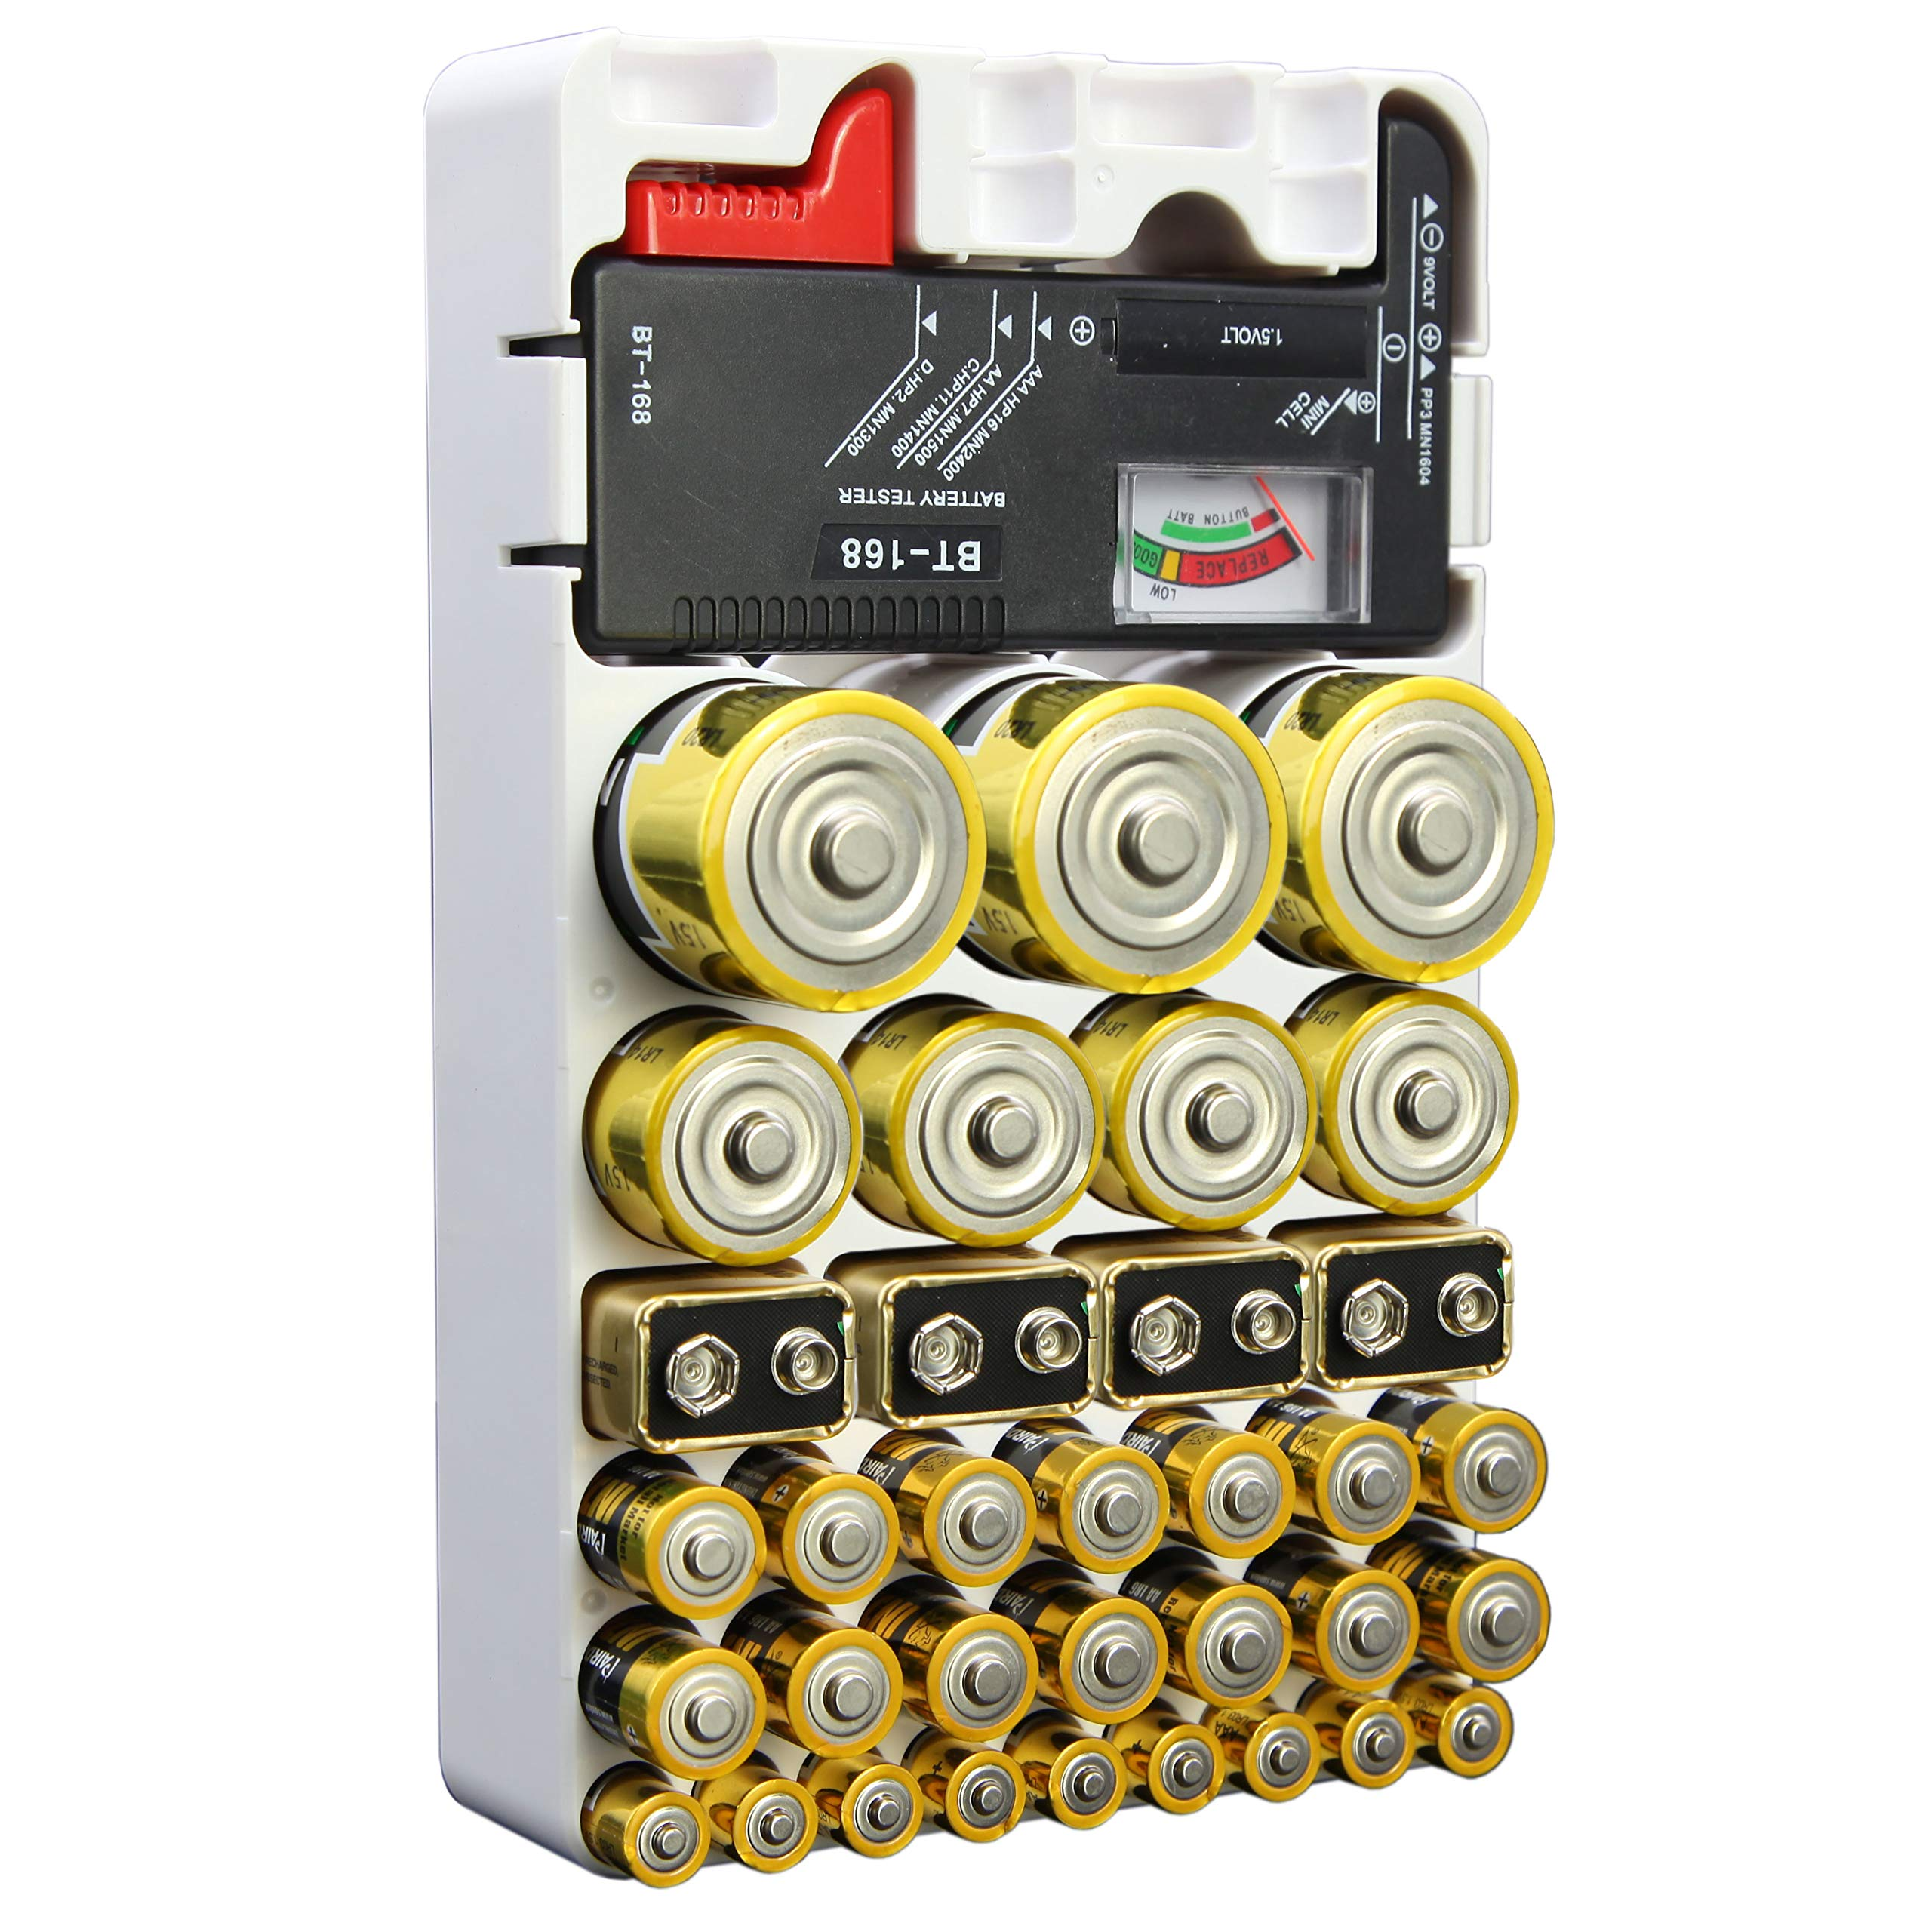 Whizzotech Battery Organizer and Tester for AA AAA C D 9V Battery Storage Case/Holder/Container (Holds 46 Batteries with Tester)